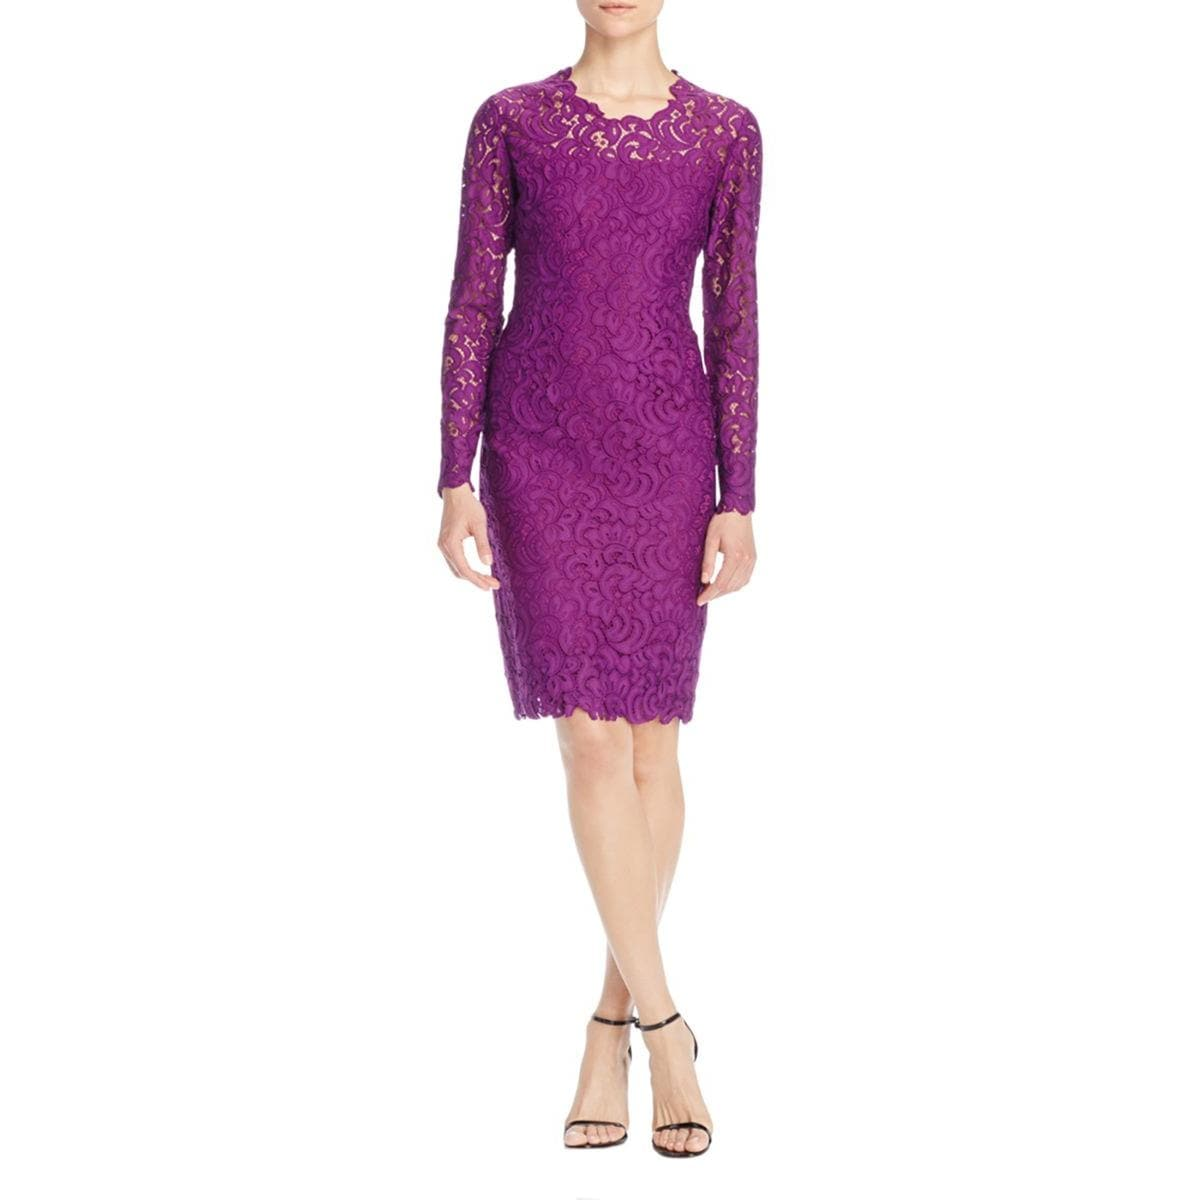 Elie Tahari Womens Bellamy Cocktail Dress Lace Long Sleeves - Free ...